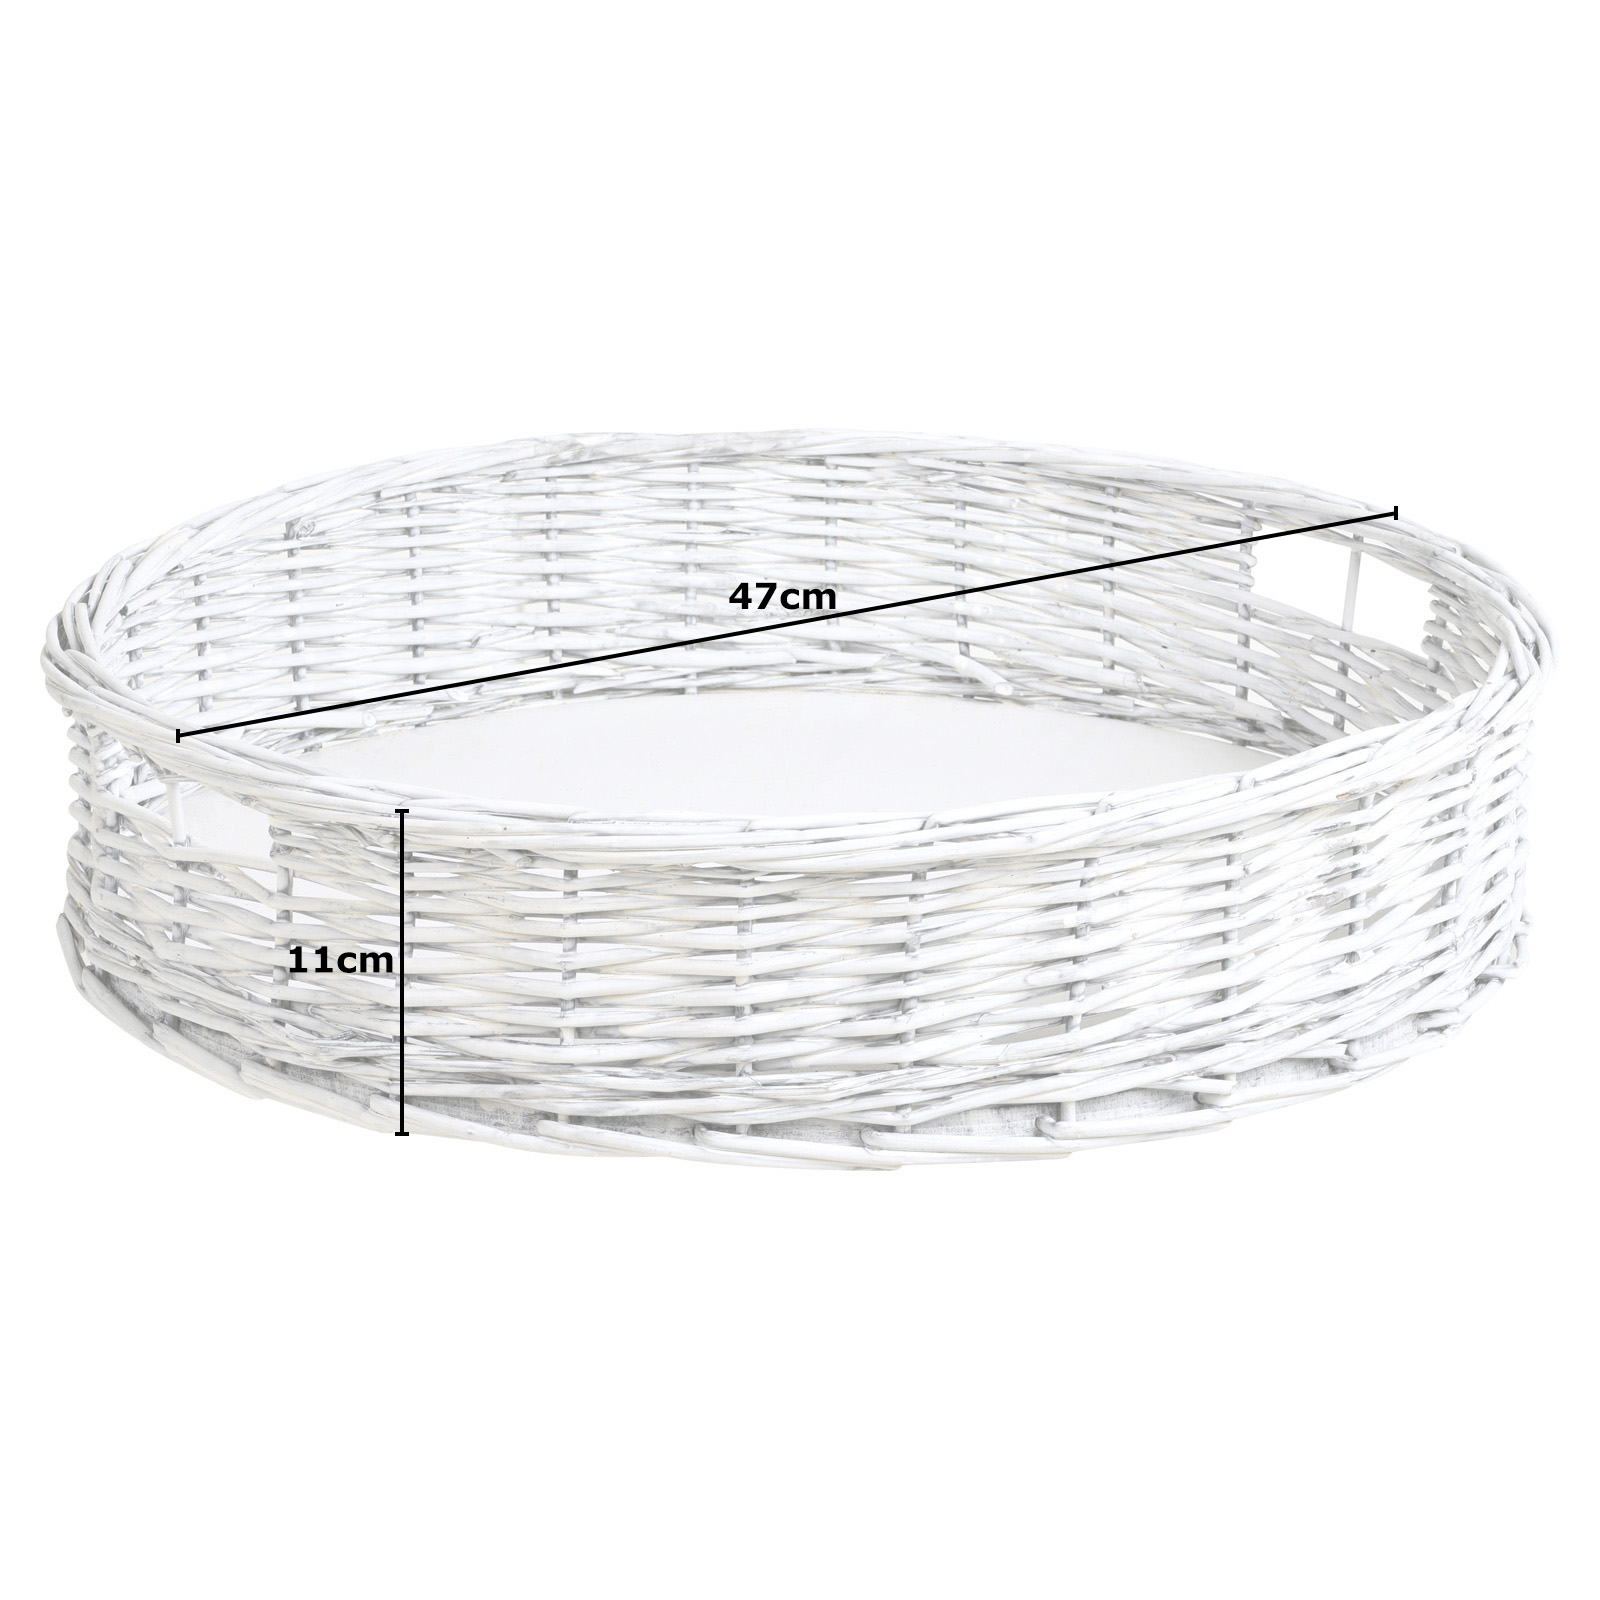 Hartleys-Round-Wicker-Serving-Tray-Decorative-Wooden-Platter-Coffee-Table-Decor thumbnail 14